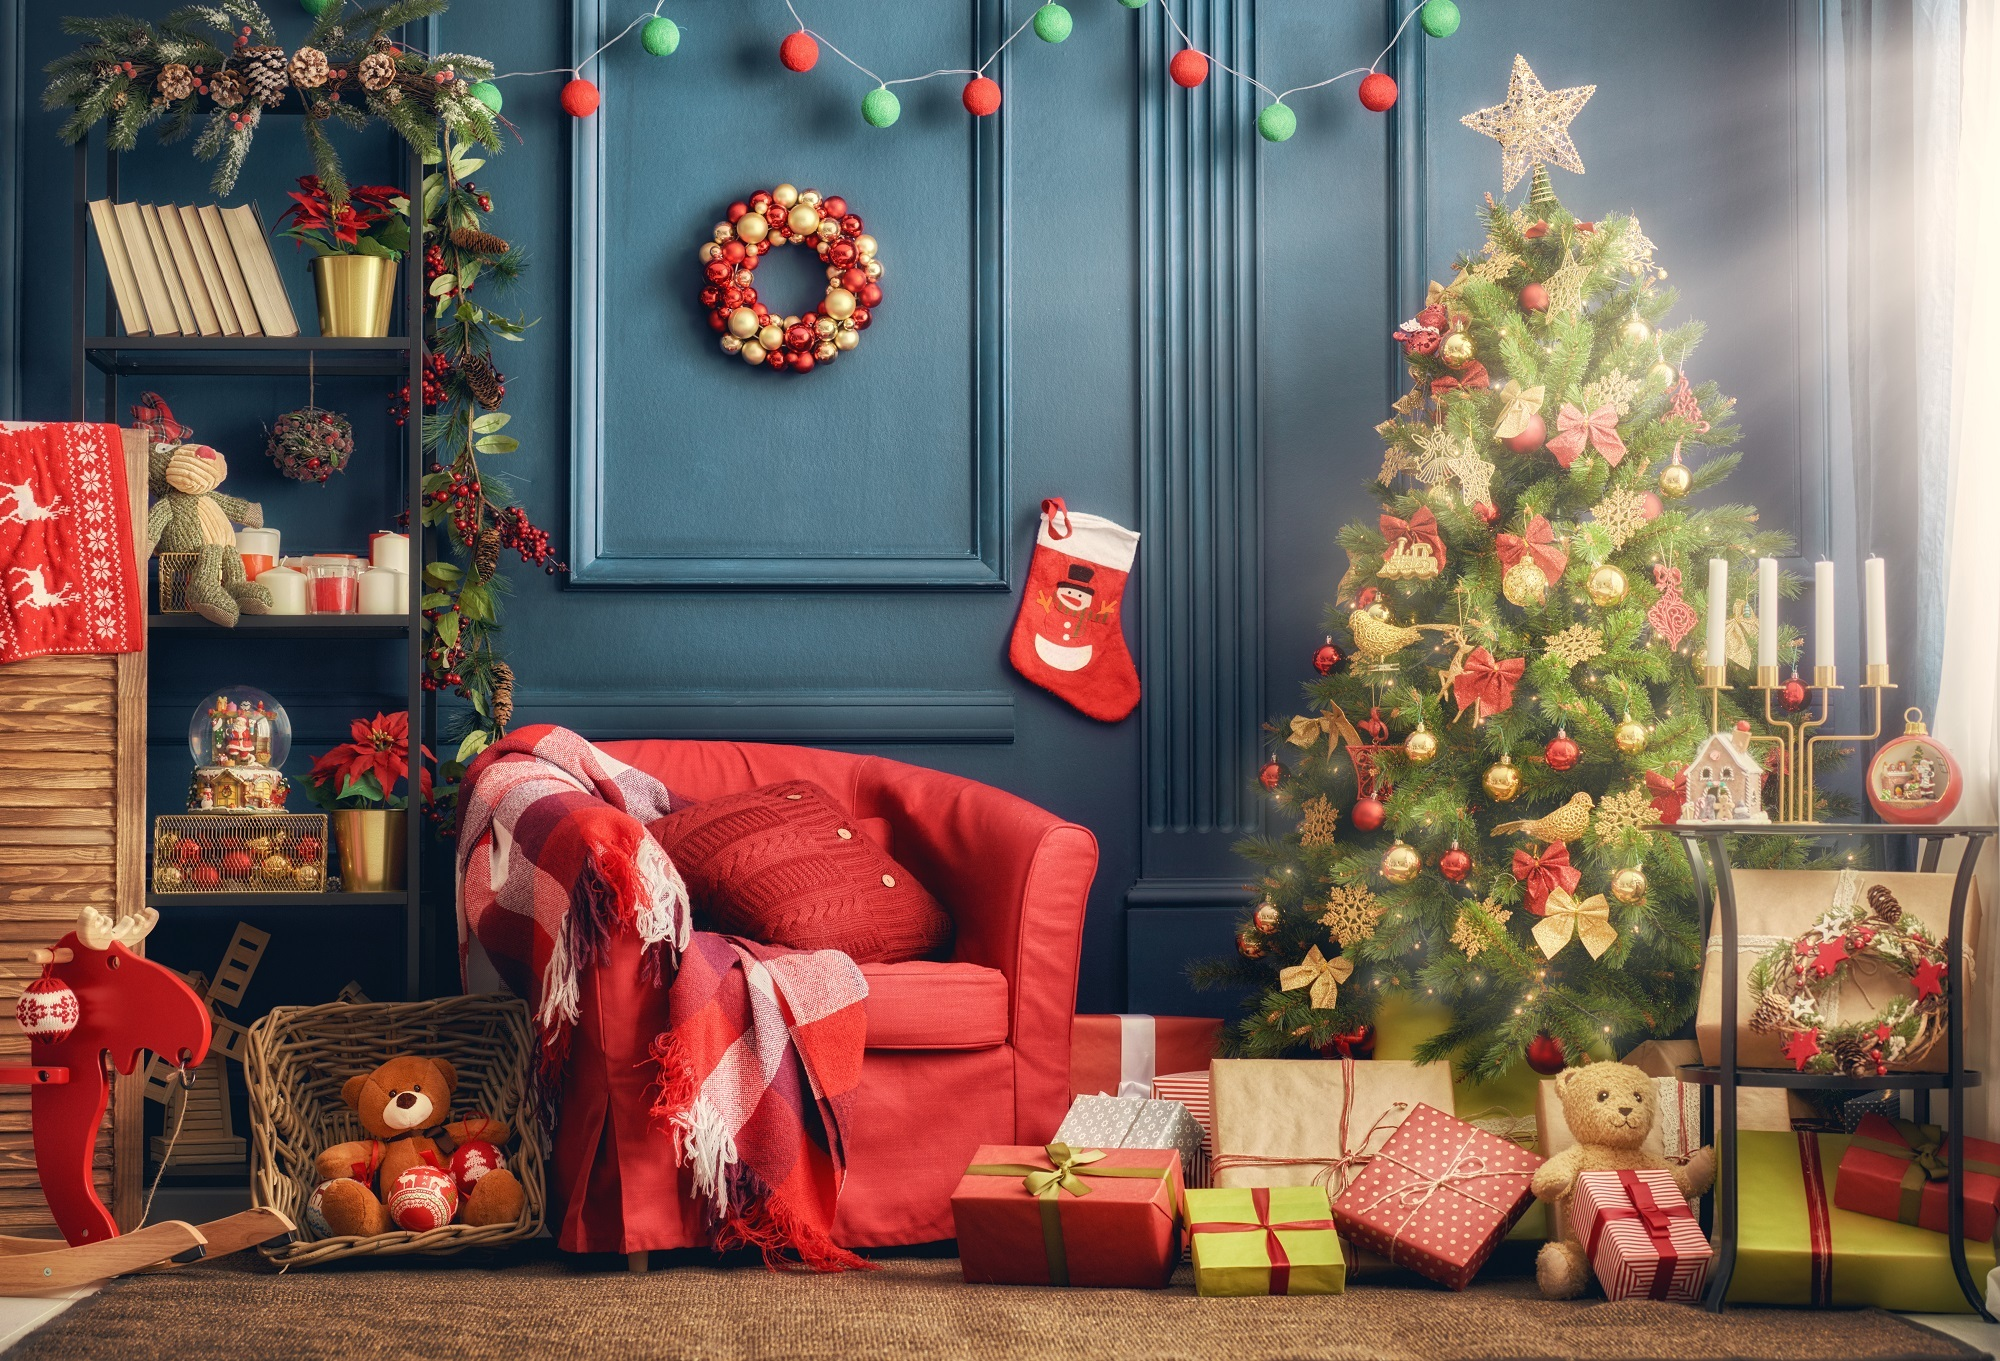 Great Christmas decorating ideas for small spaces